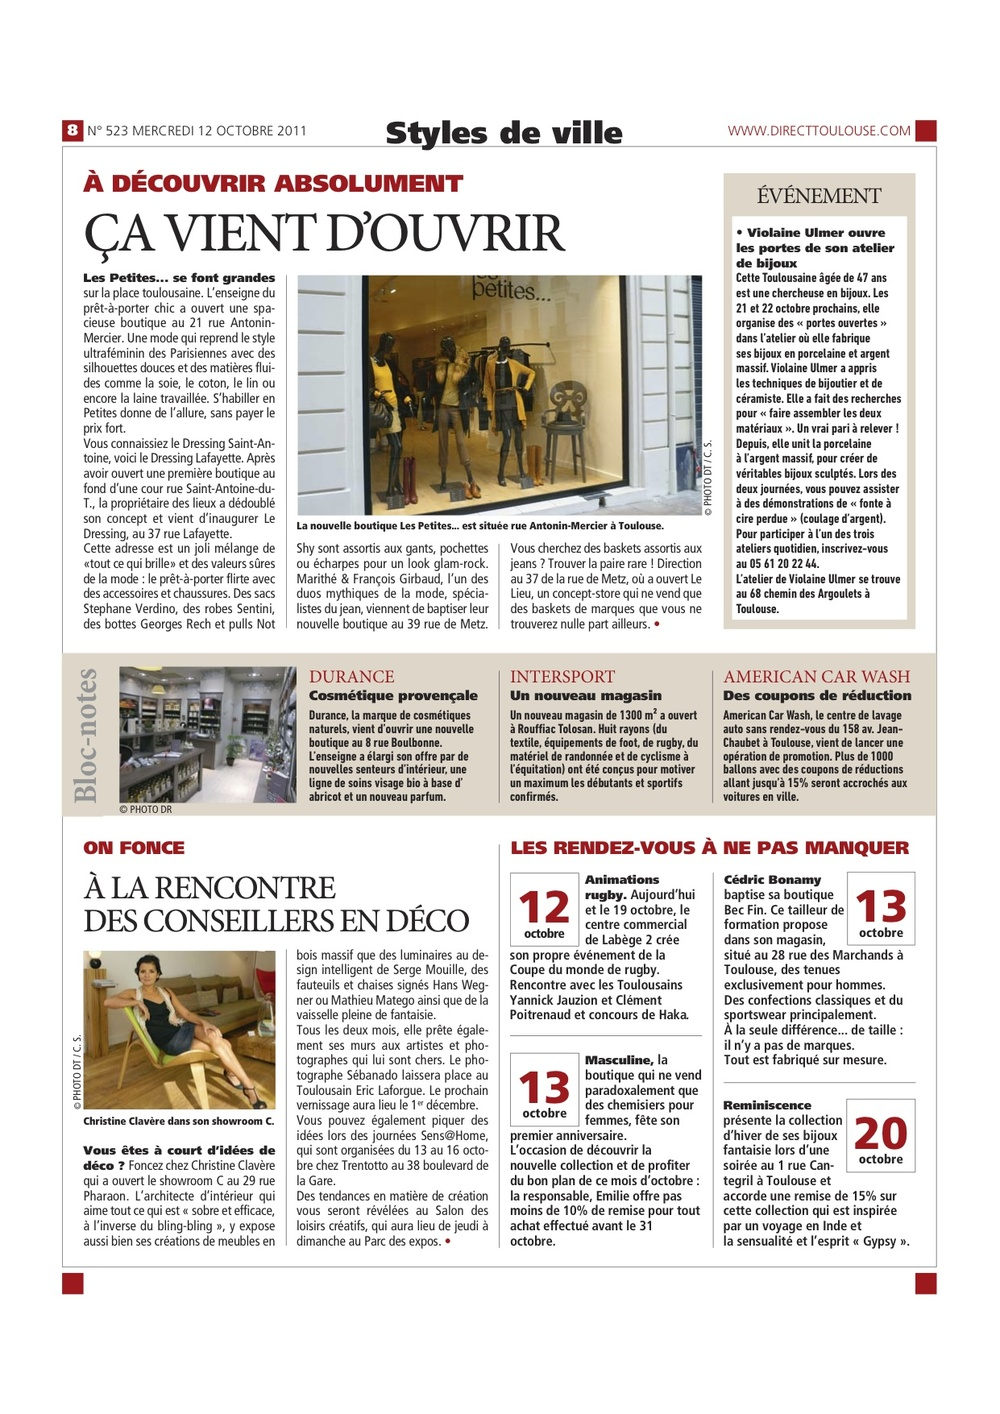 direct_matin_sept_2011.jpg